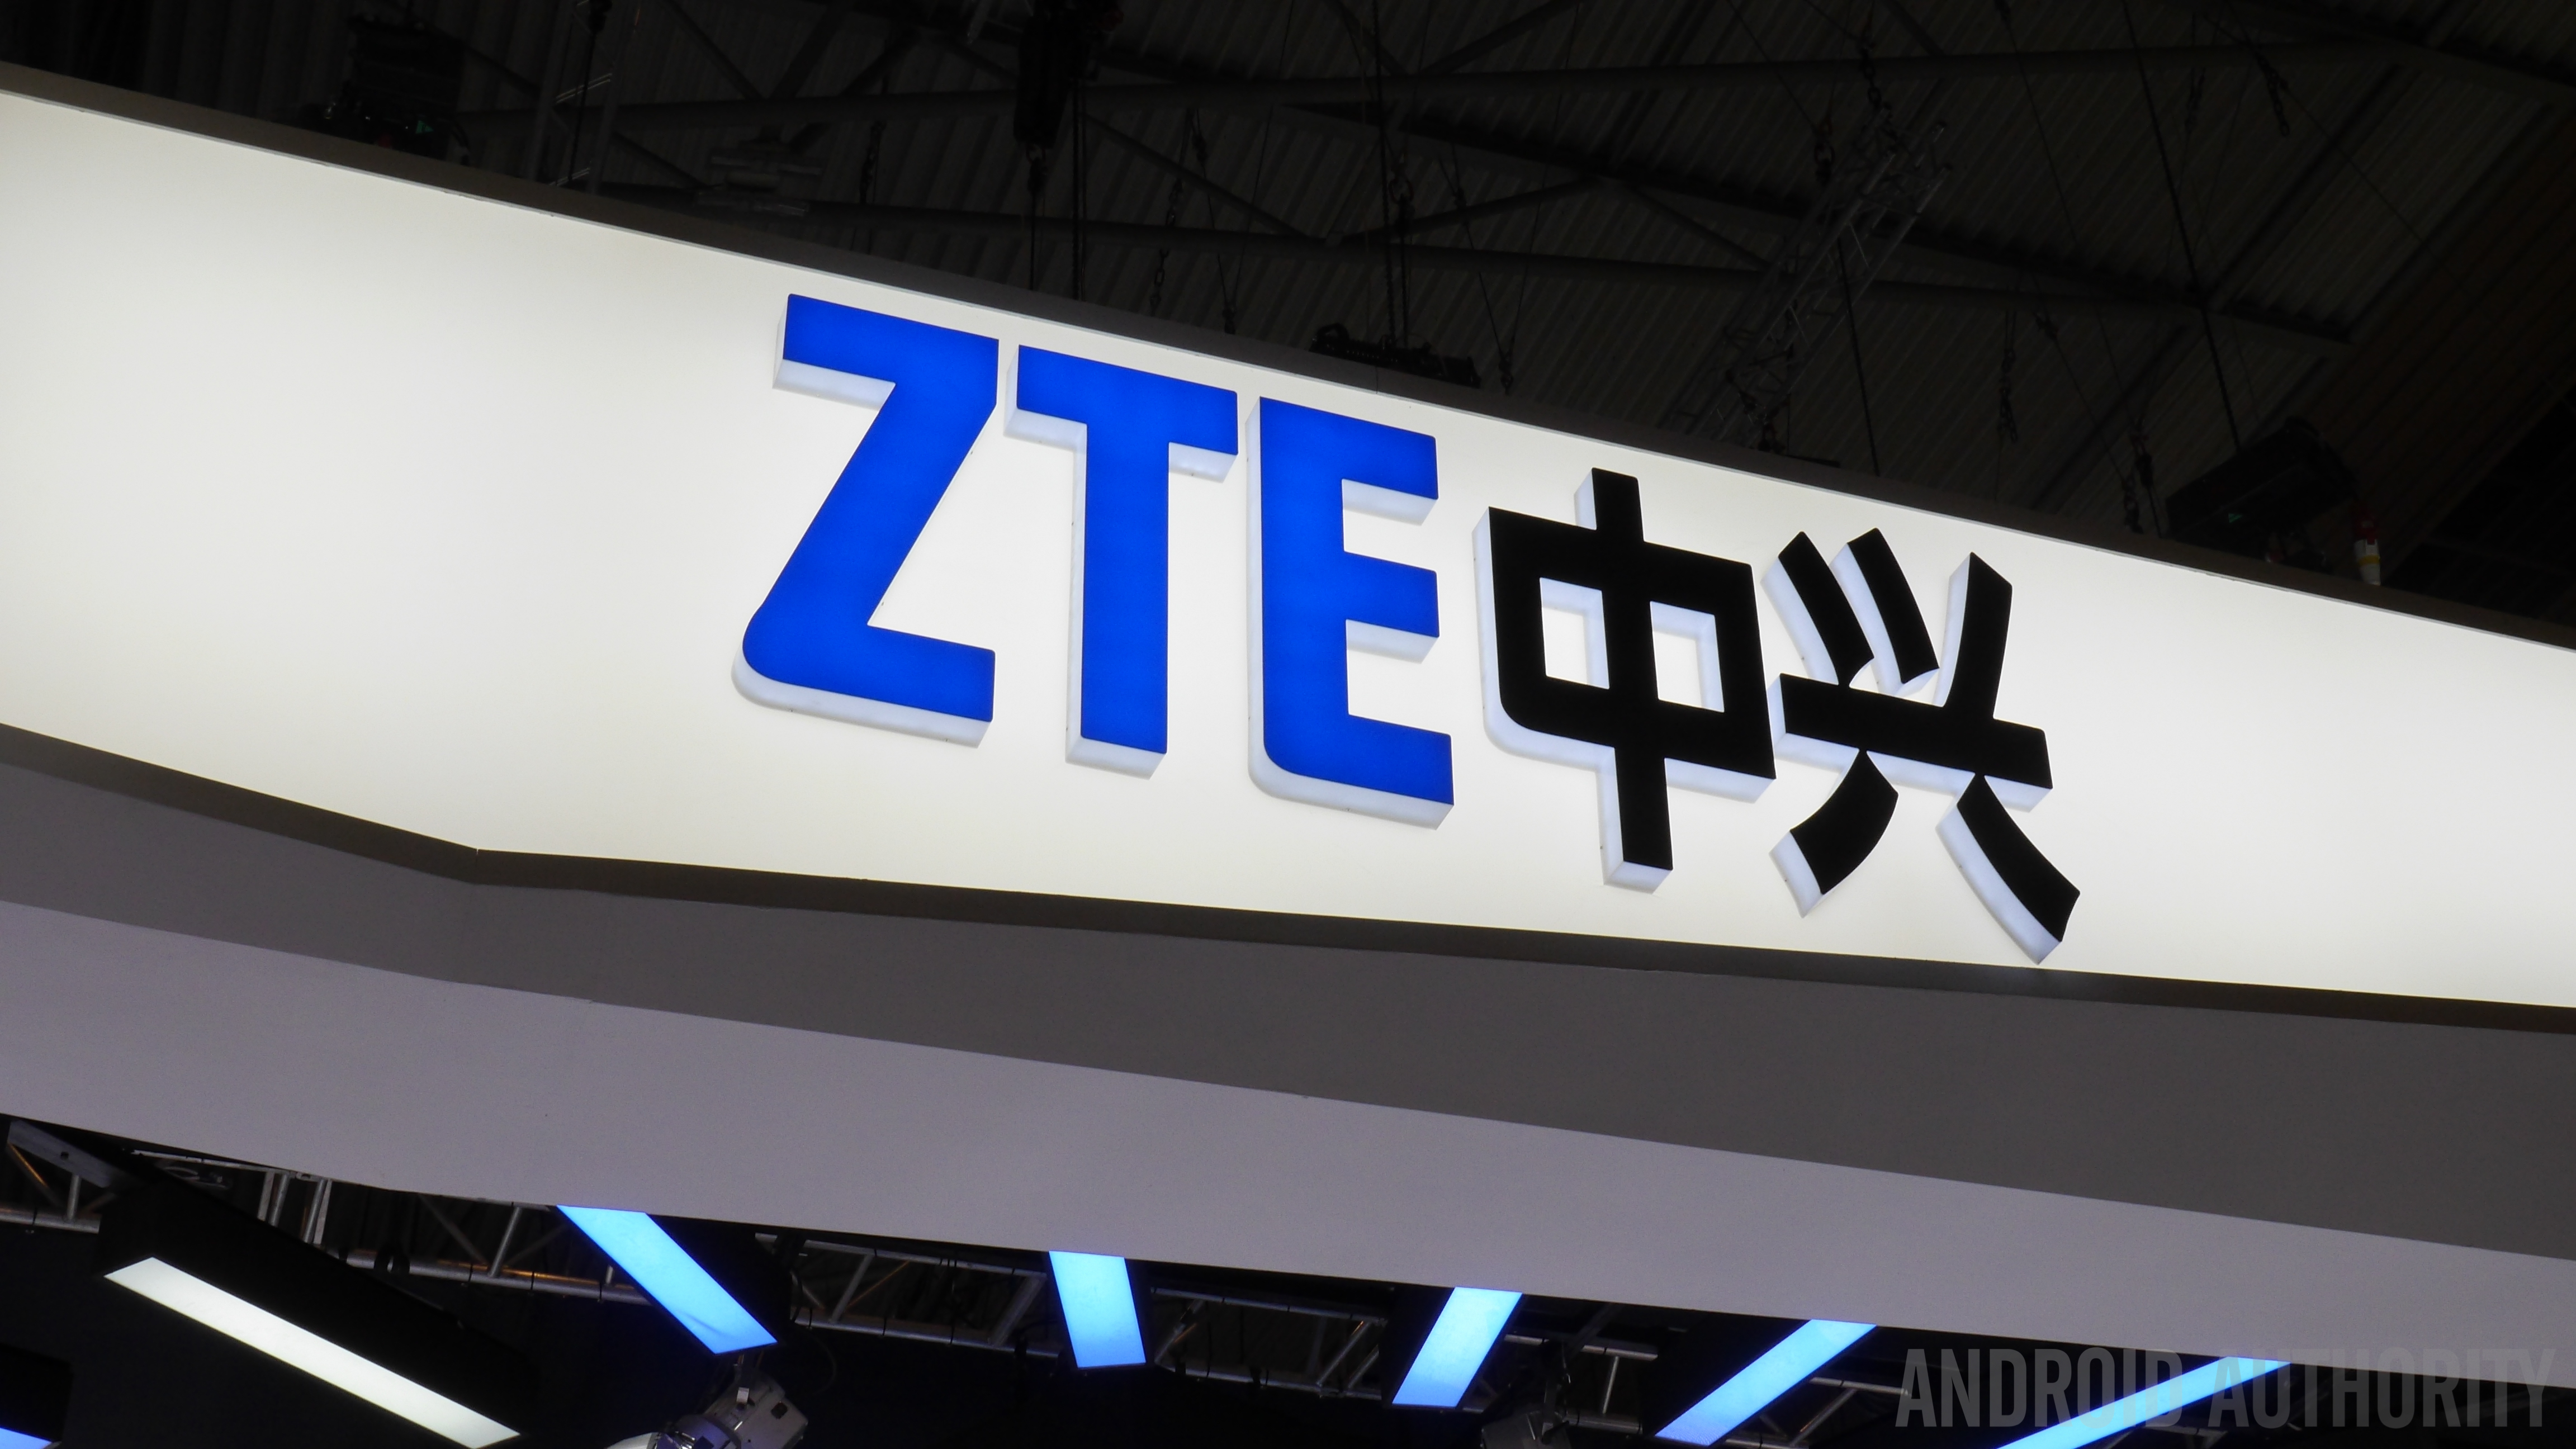 Trump administration is telling Congress it has an agreement to save China's ZTE: Reports